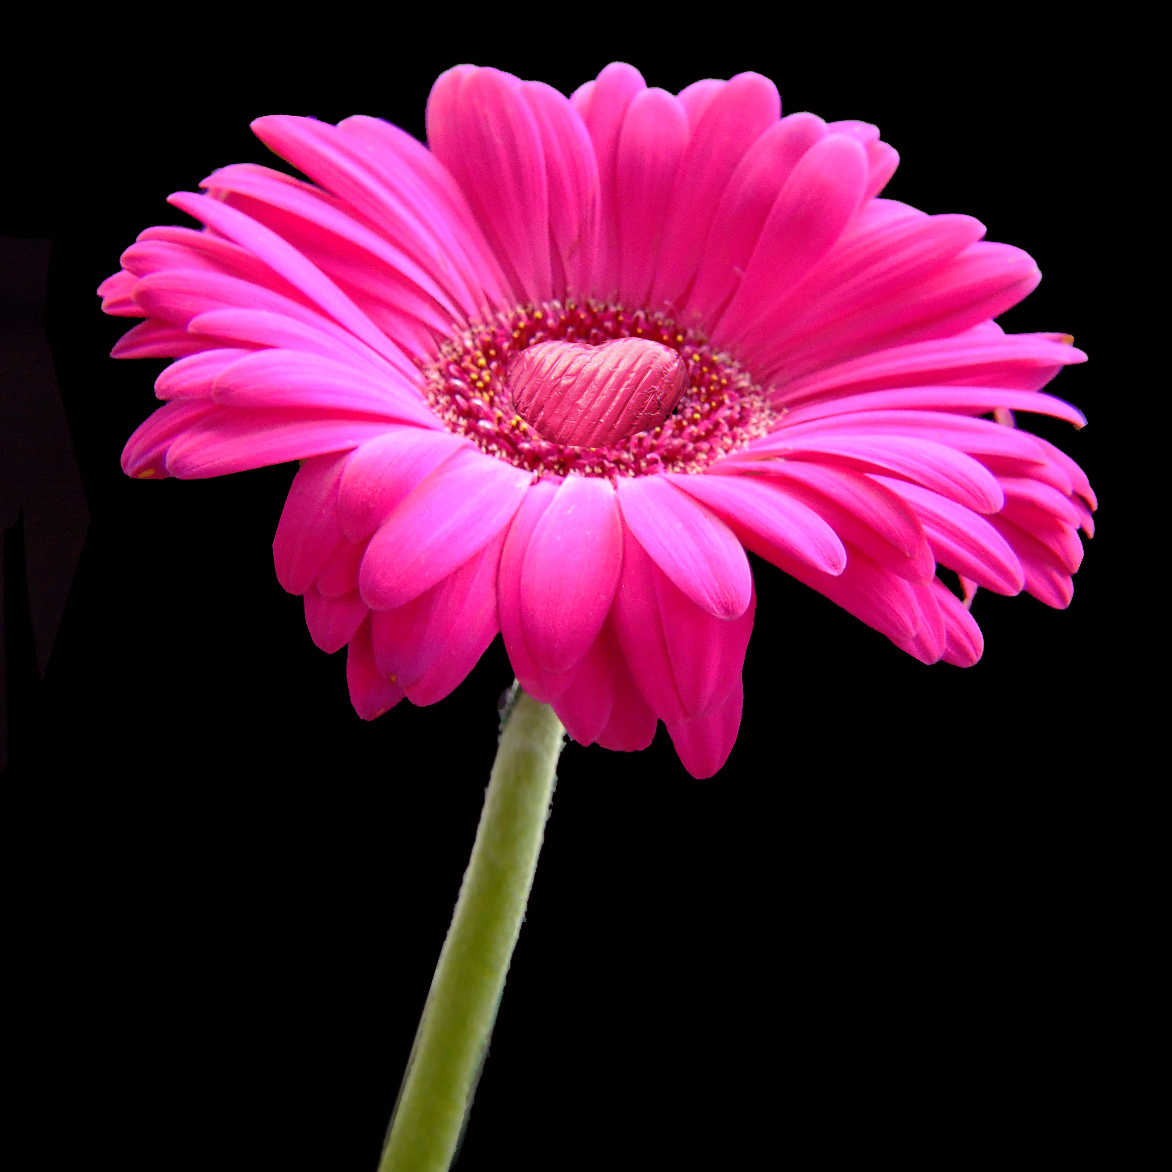 Chocolate heart on a pink gerbera daisy flower for you square